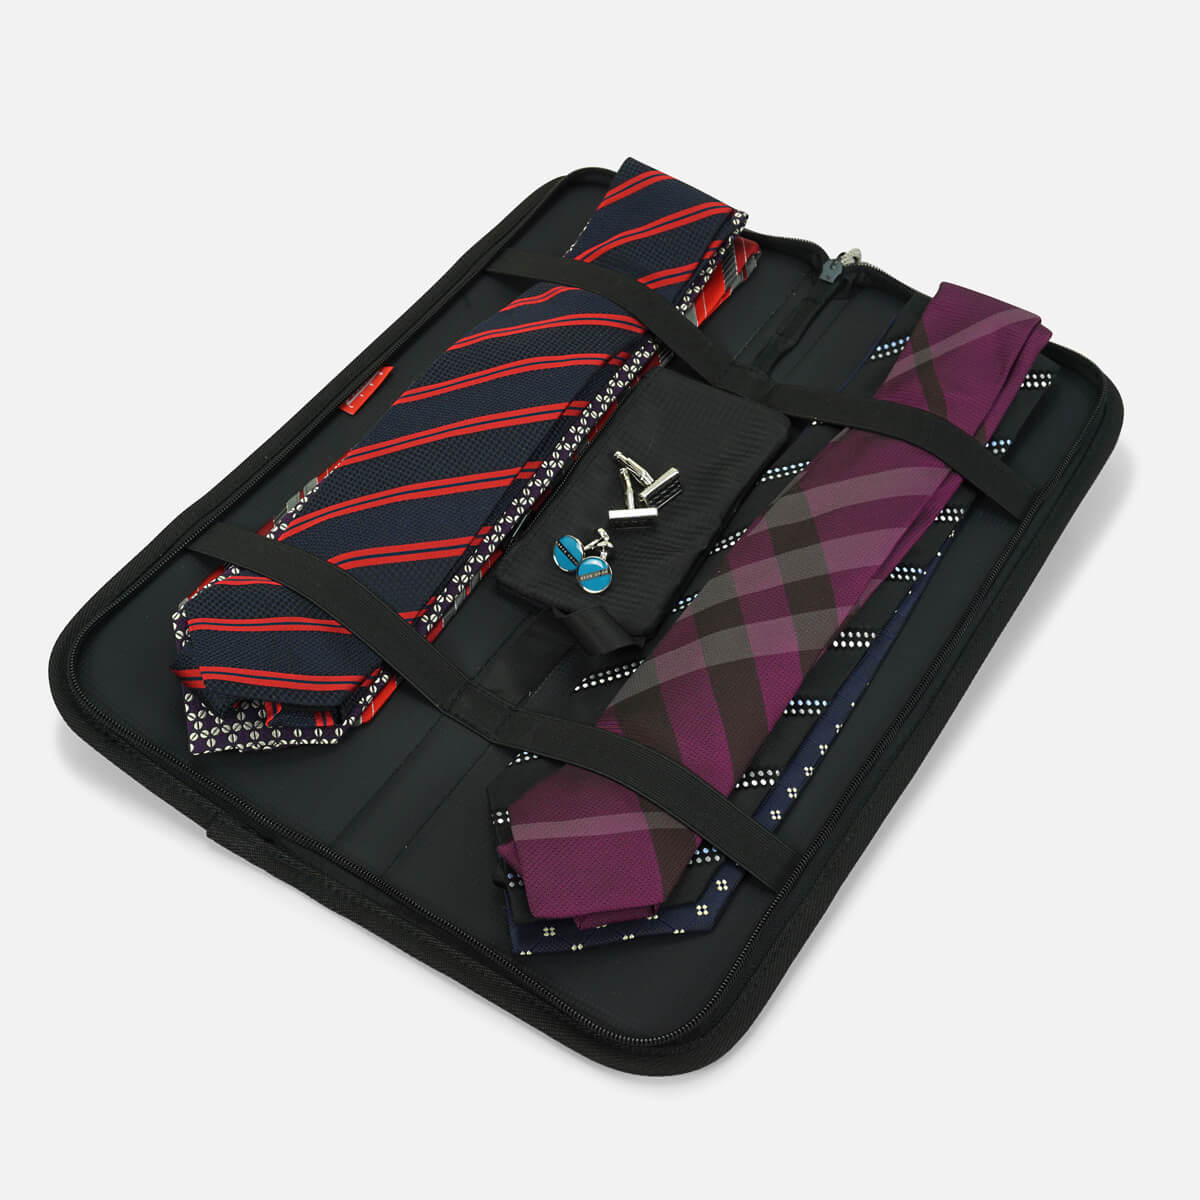 Tie Case Travel Organiser with Cuff Link Pouch